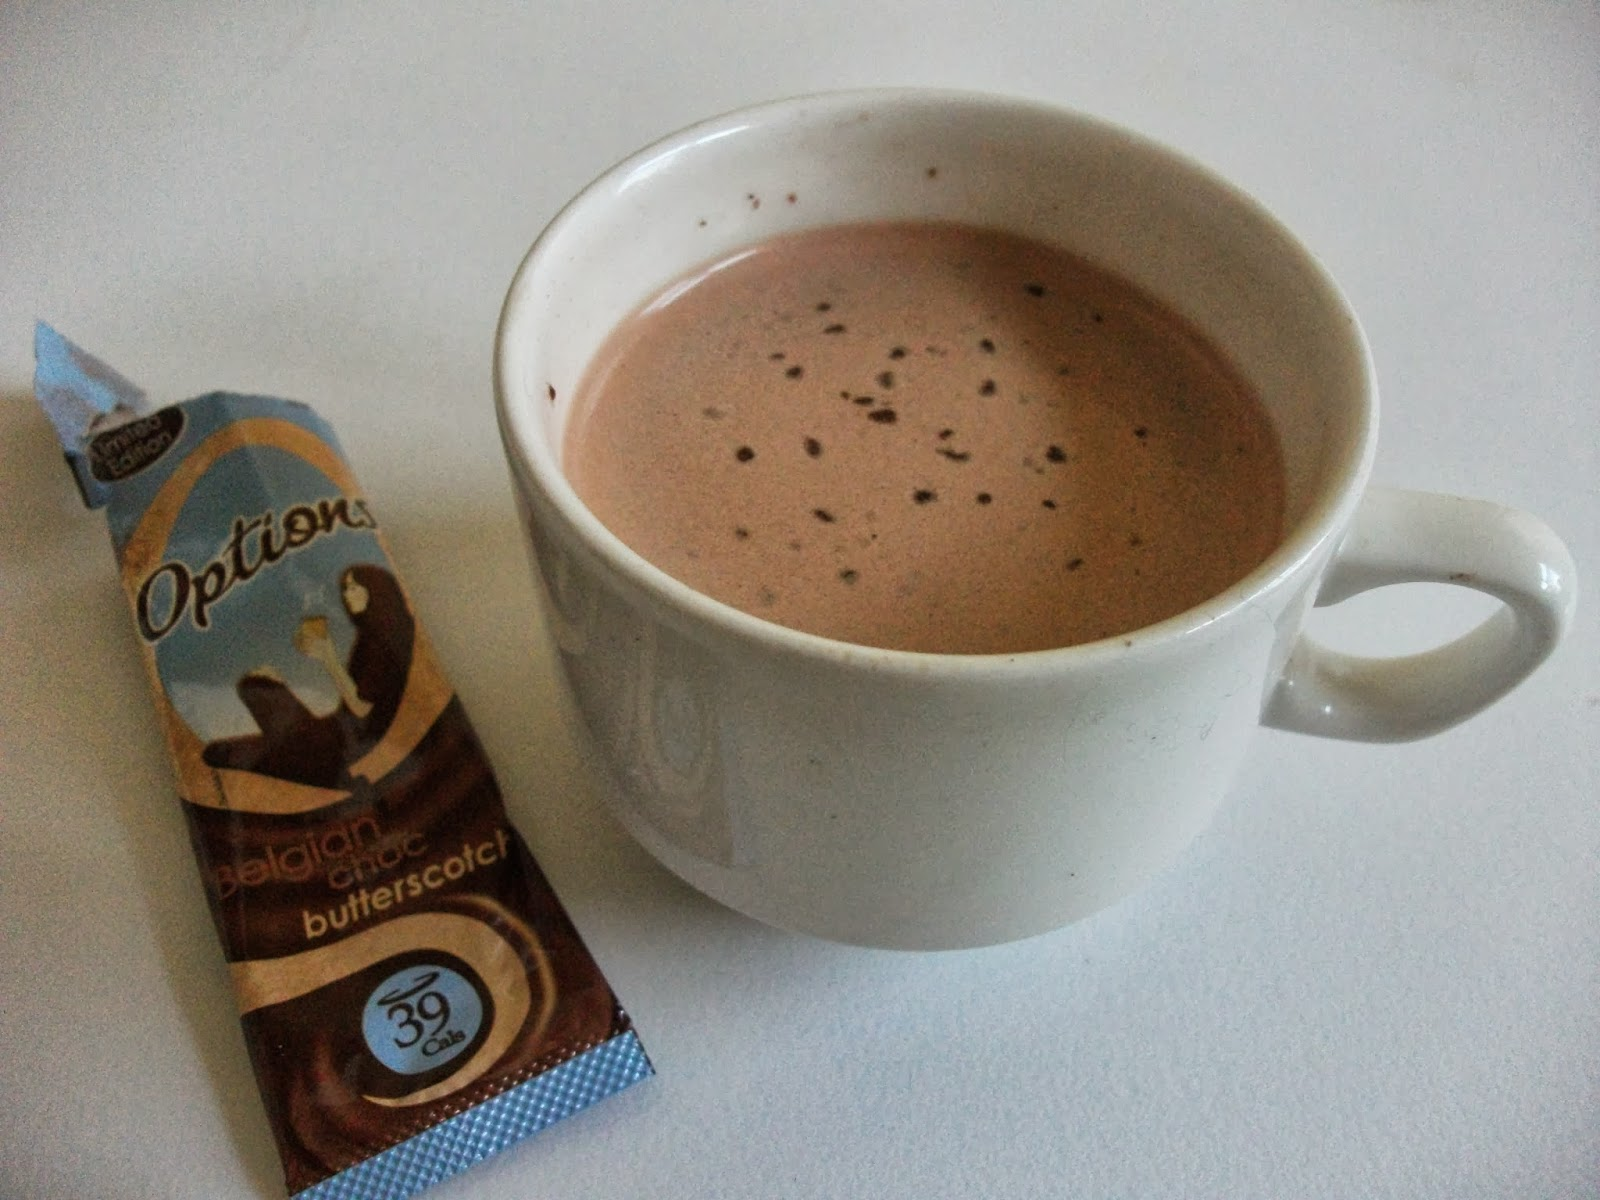 Options Belgian Choc Butterscotch Hot Chocolate Limited